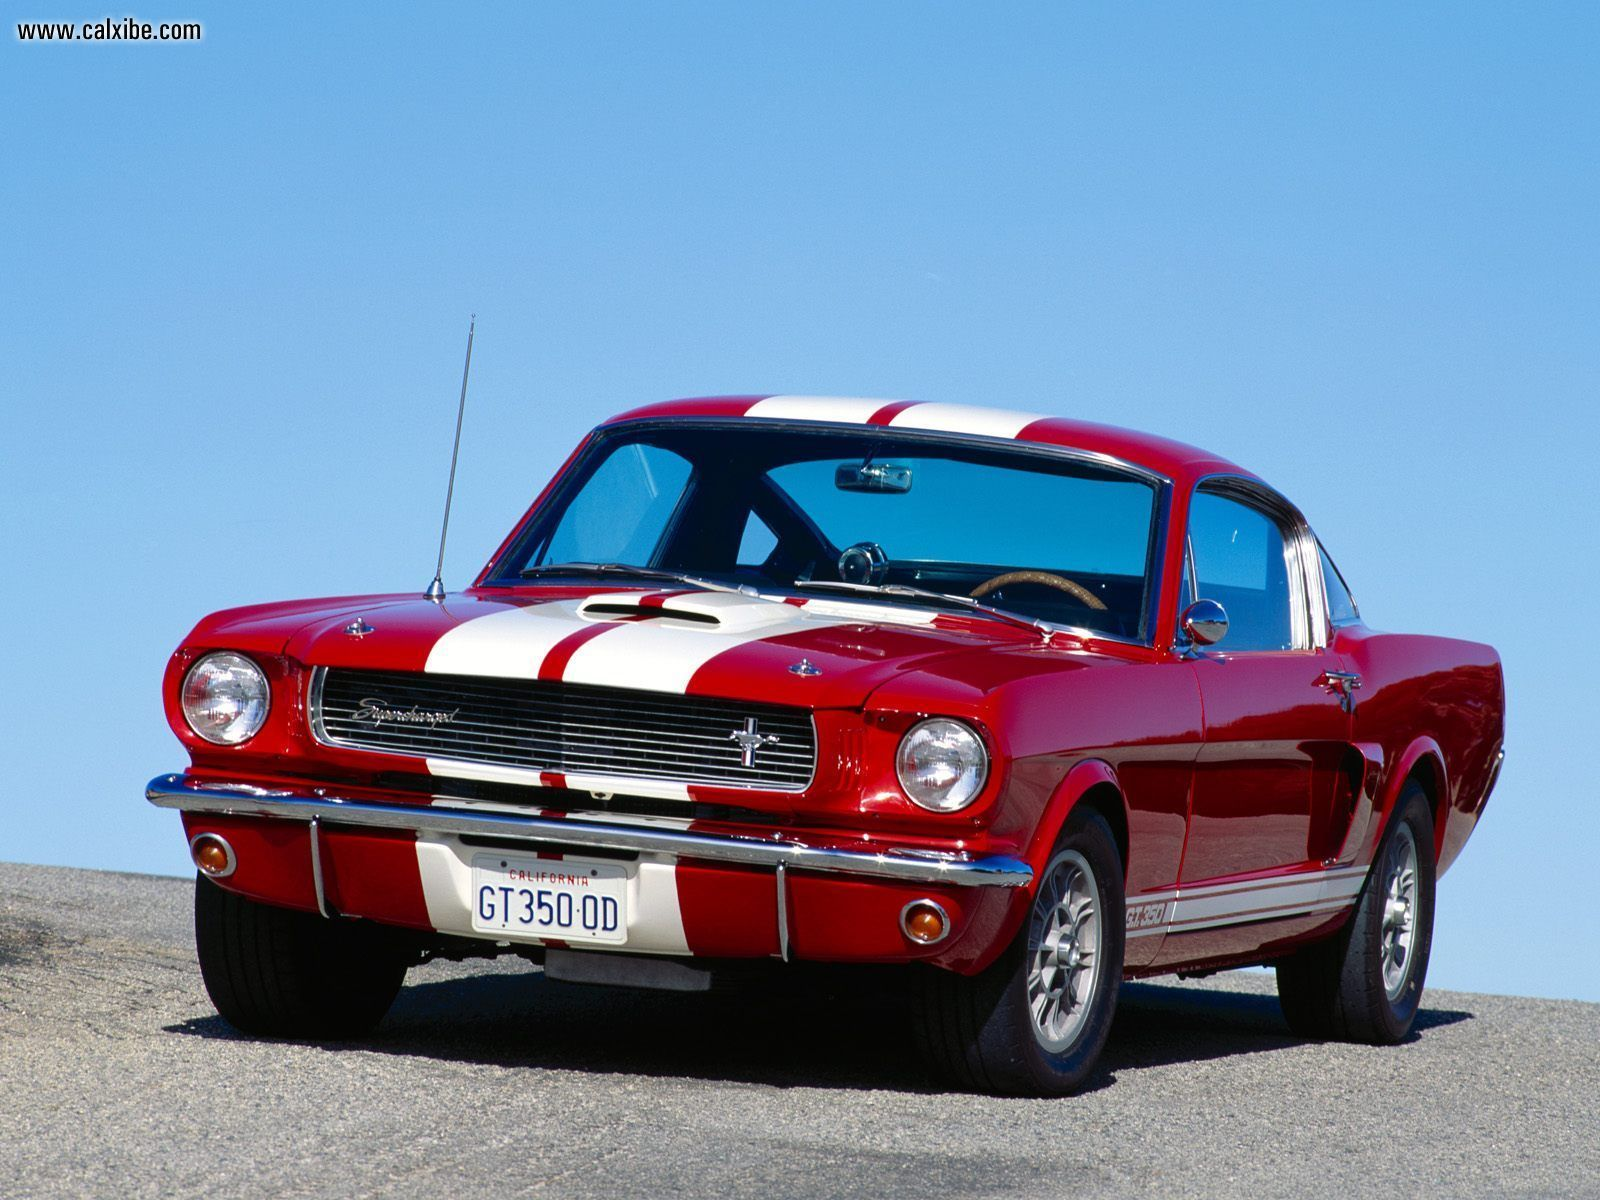 1966 Ford Mustang Shelby GT 350 Muscle Cars Pinterest